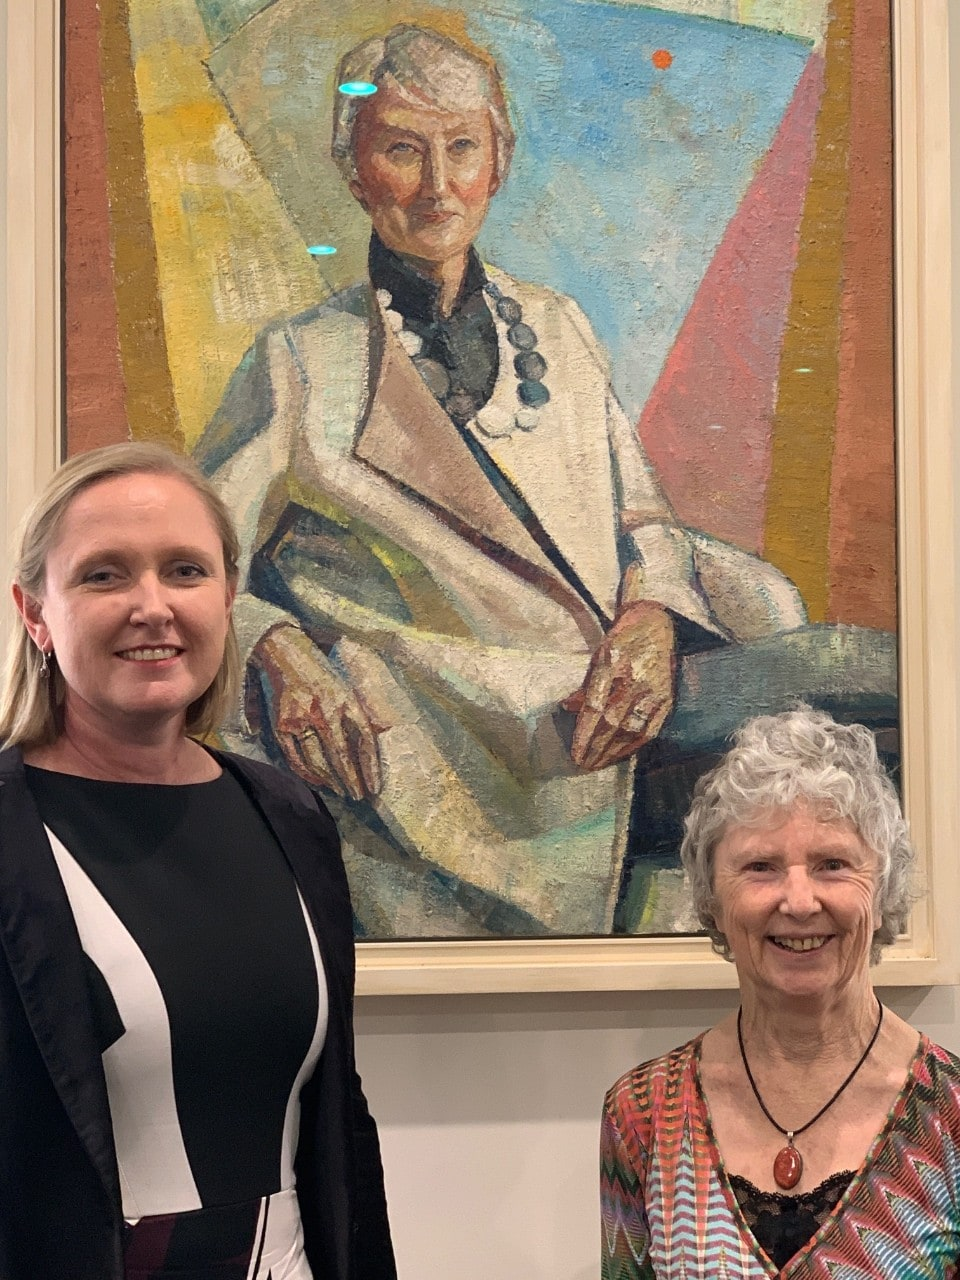 Darian McBain and Joy Murray standing in front of Yvette Coppersmith's portrait of Emeritus Professor Anne Green, President of Sydney's Physics Foundation.